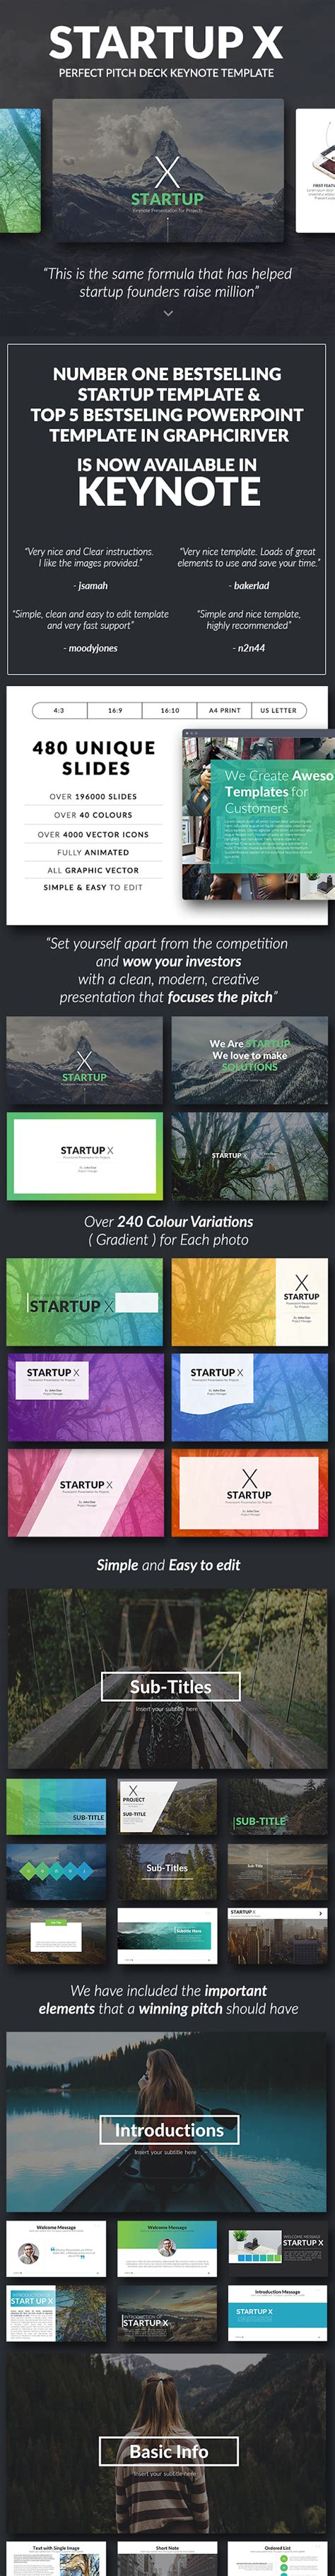 Startup X Perfect Pitch Deck Keynote Template Best Designers Startup Keynote Template